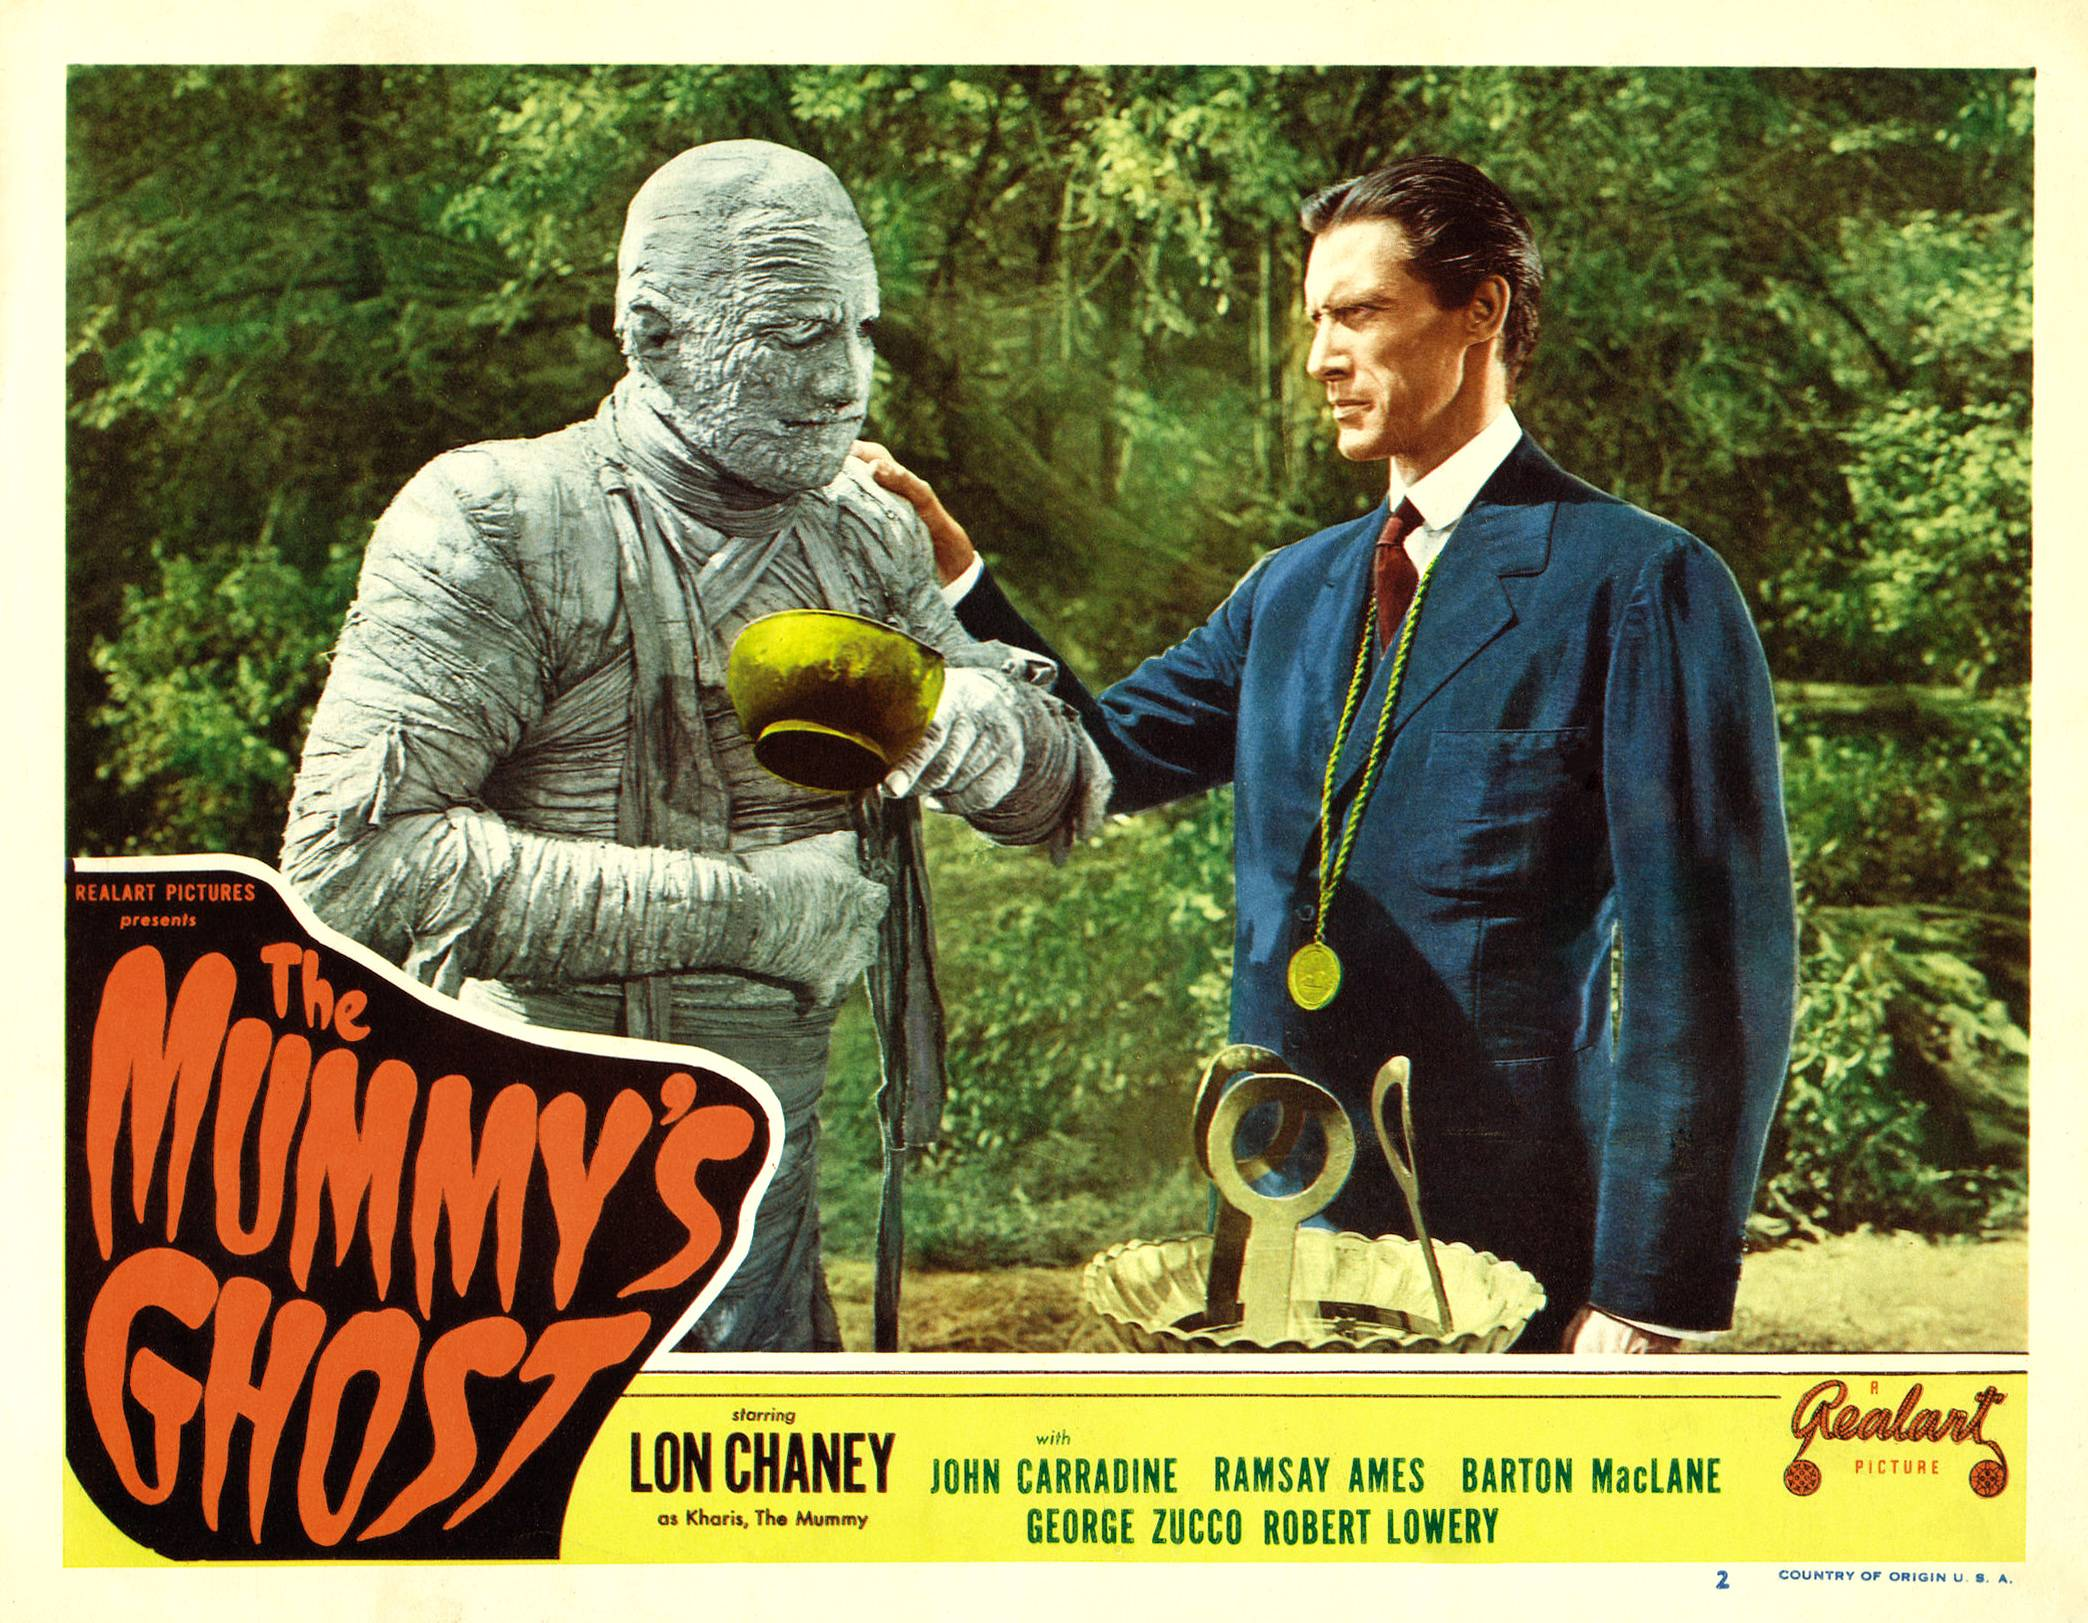 Lon Chaney Jr./Kharis the Mummy with John Carradine as the newest High Priest